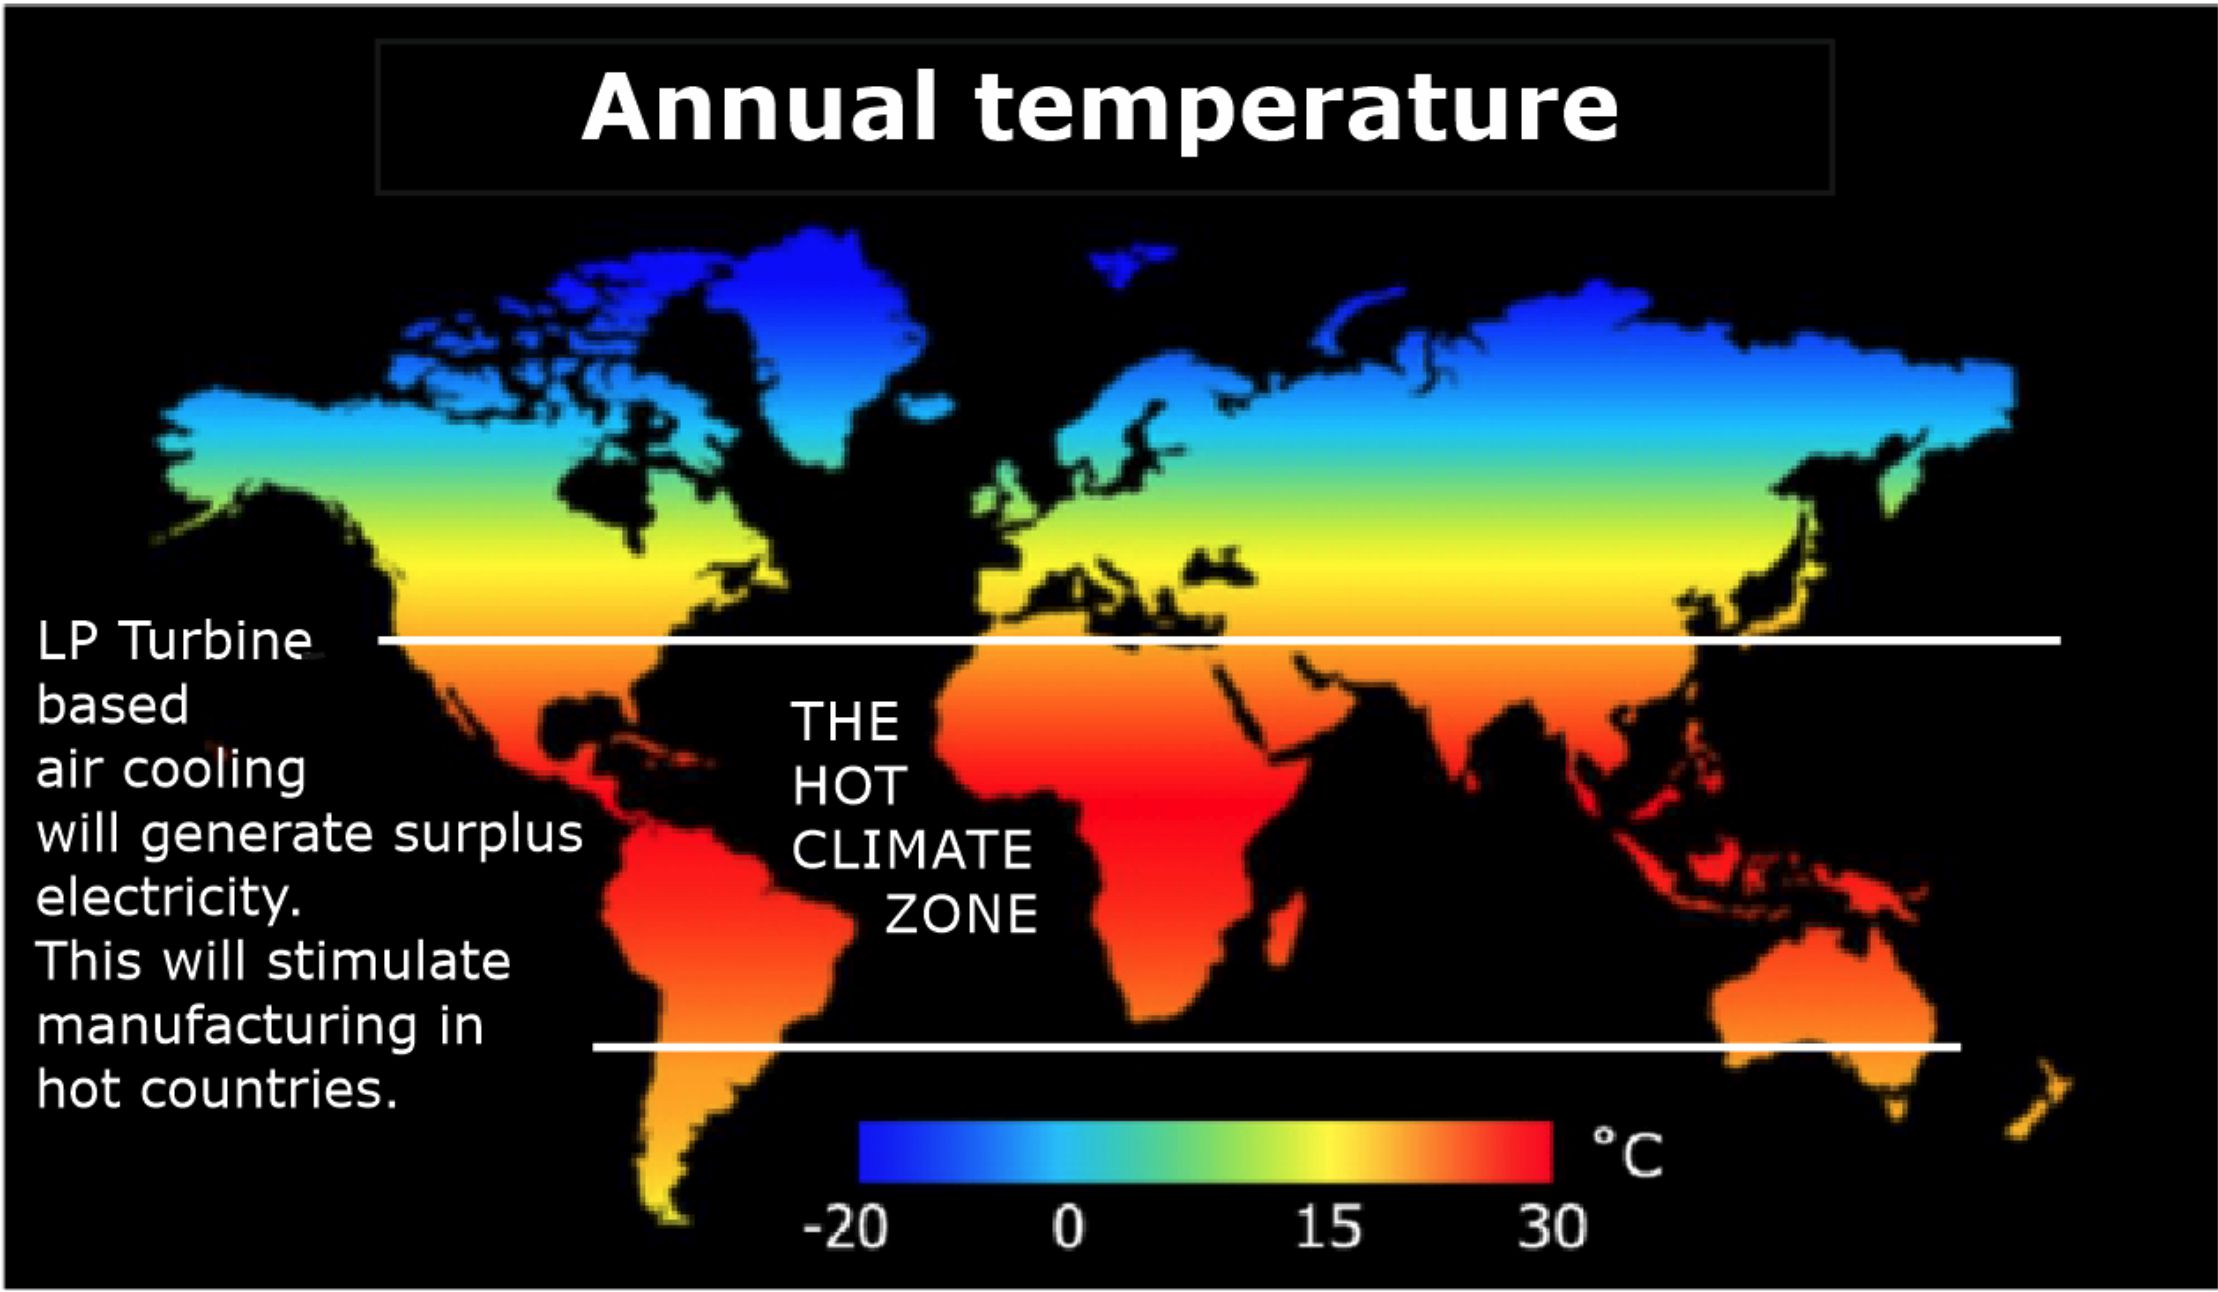 World annual temperatures